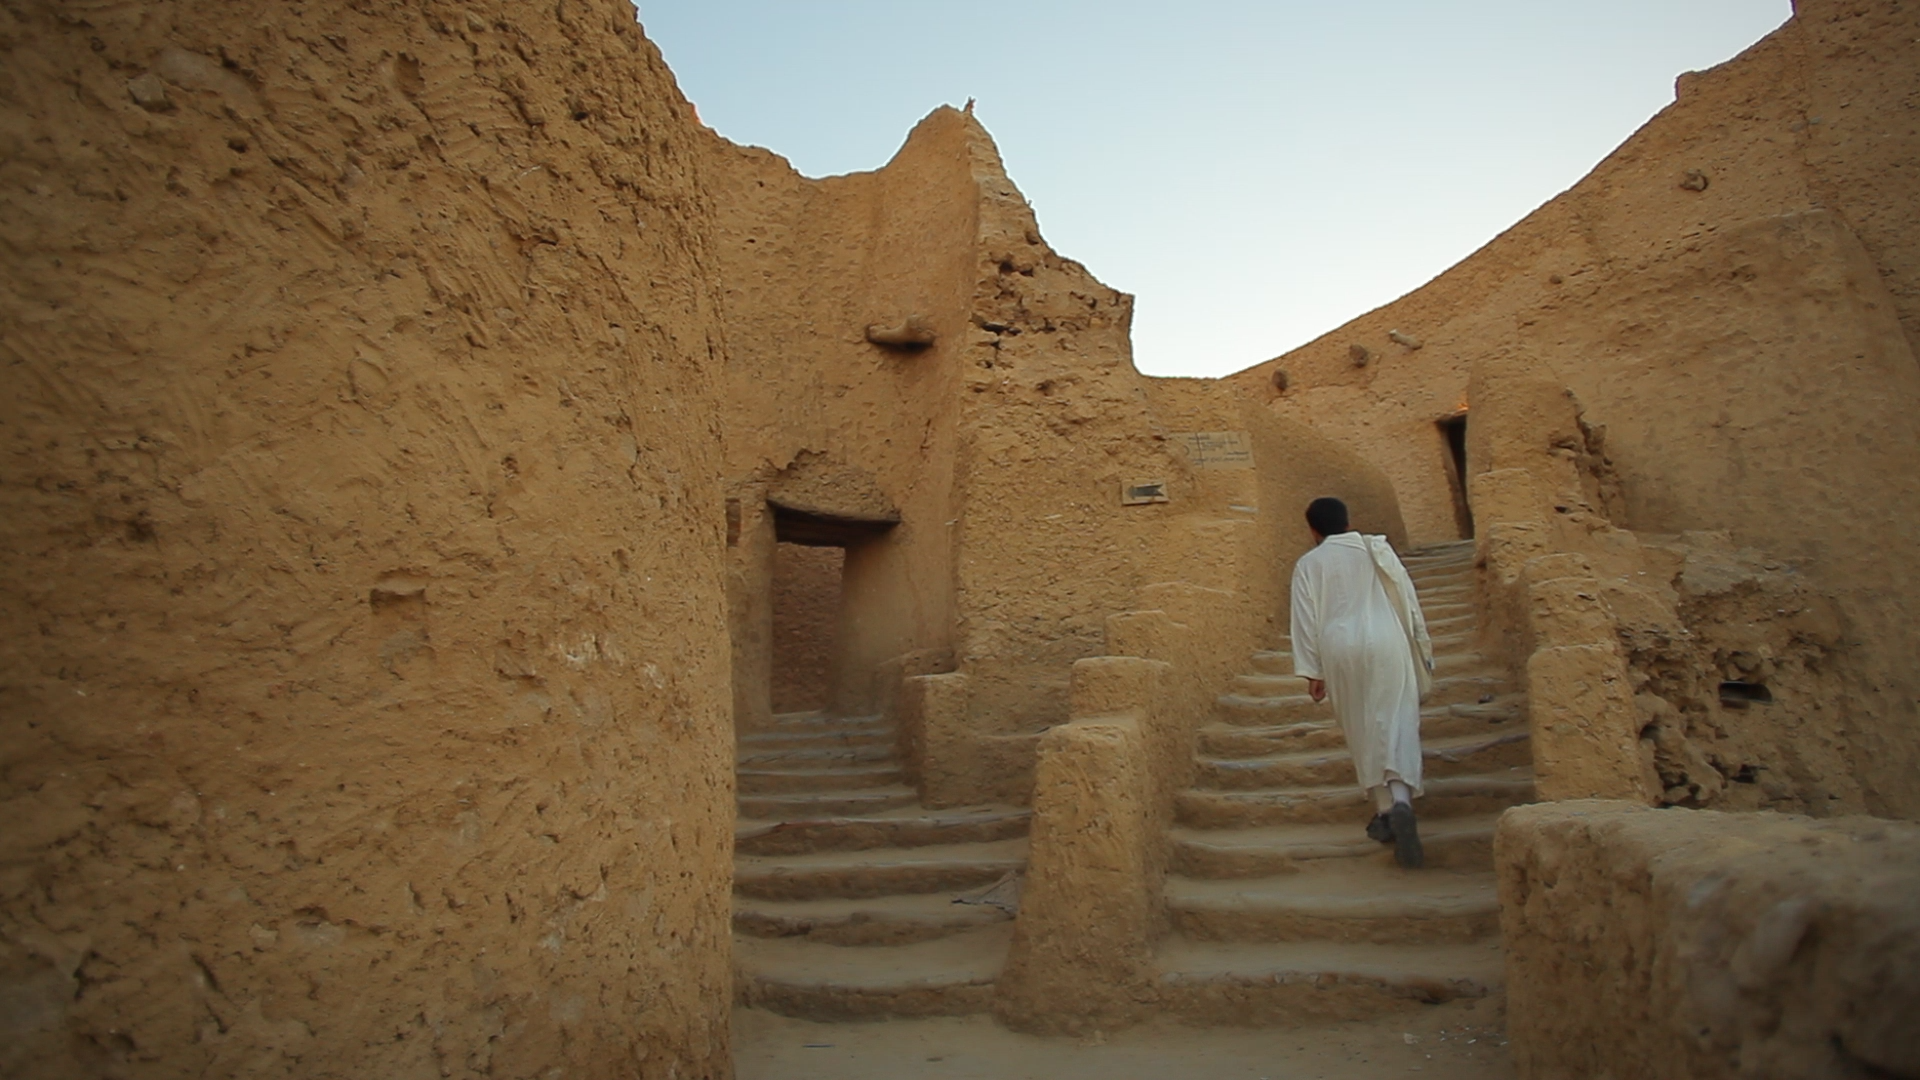 Siwa_Danyal_Mosque_Stairs.png